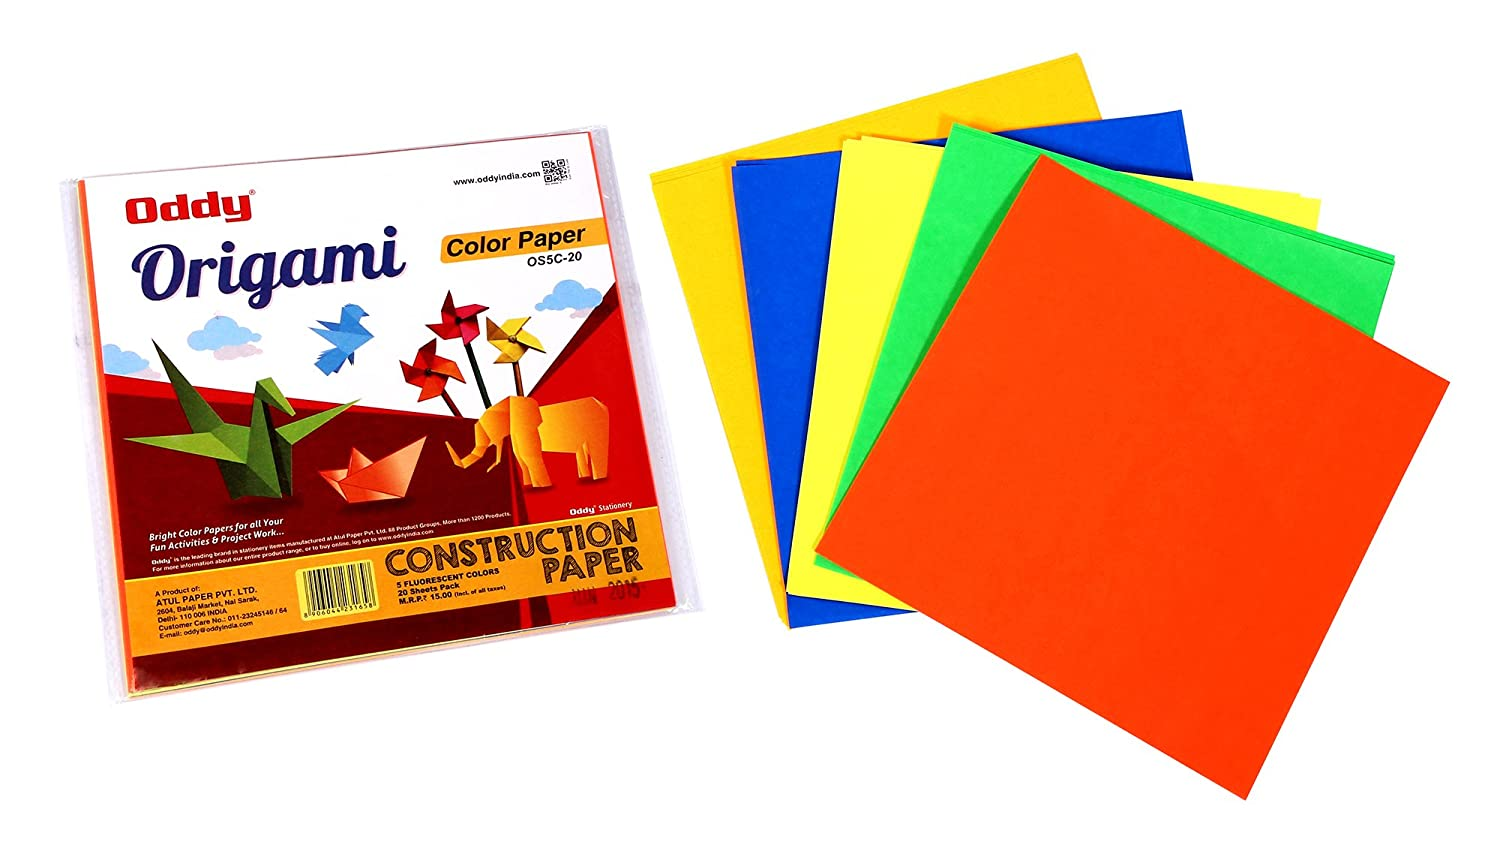 origami sheets single side fluorescent 6 x 6 4 sheets x 5 color 20 sheets set of 10 amazonin office products - Color Papers